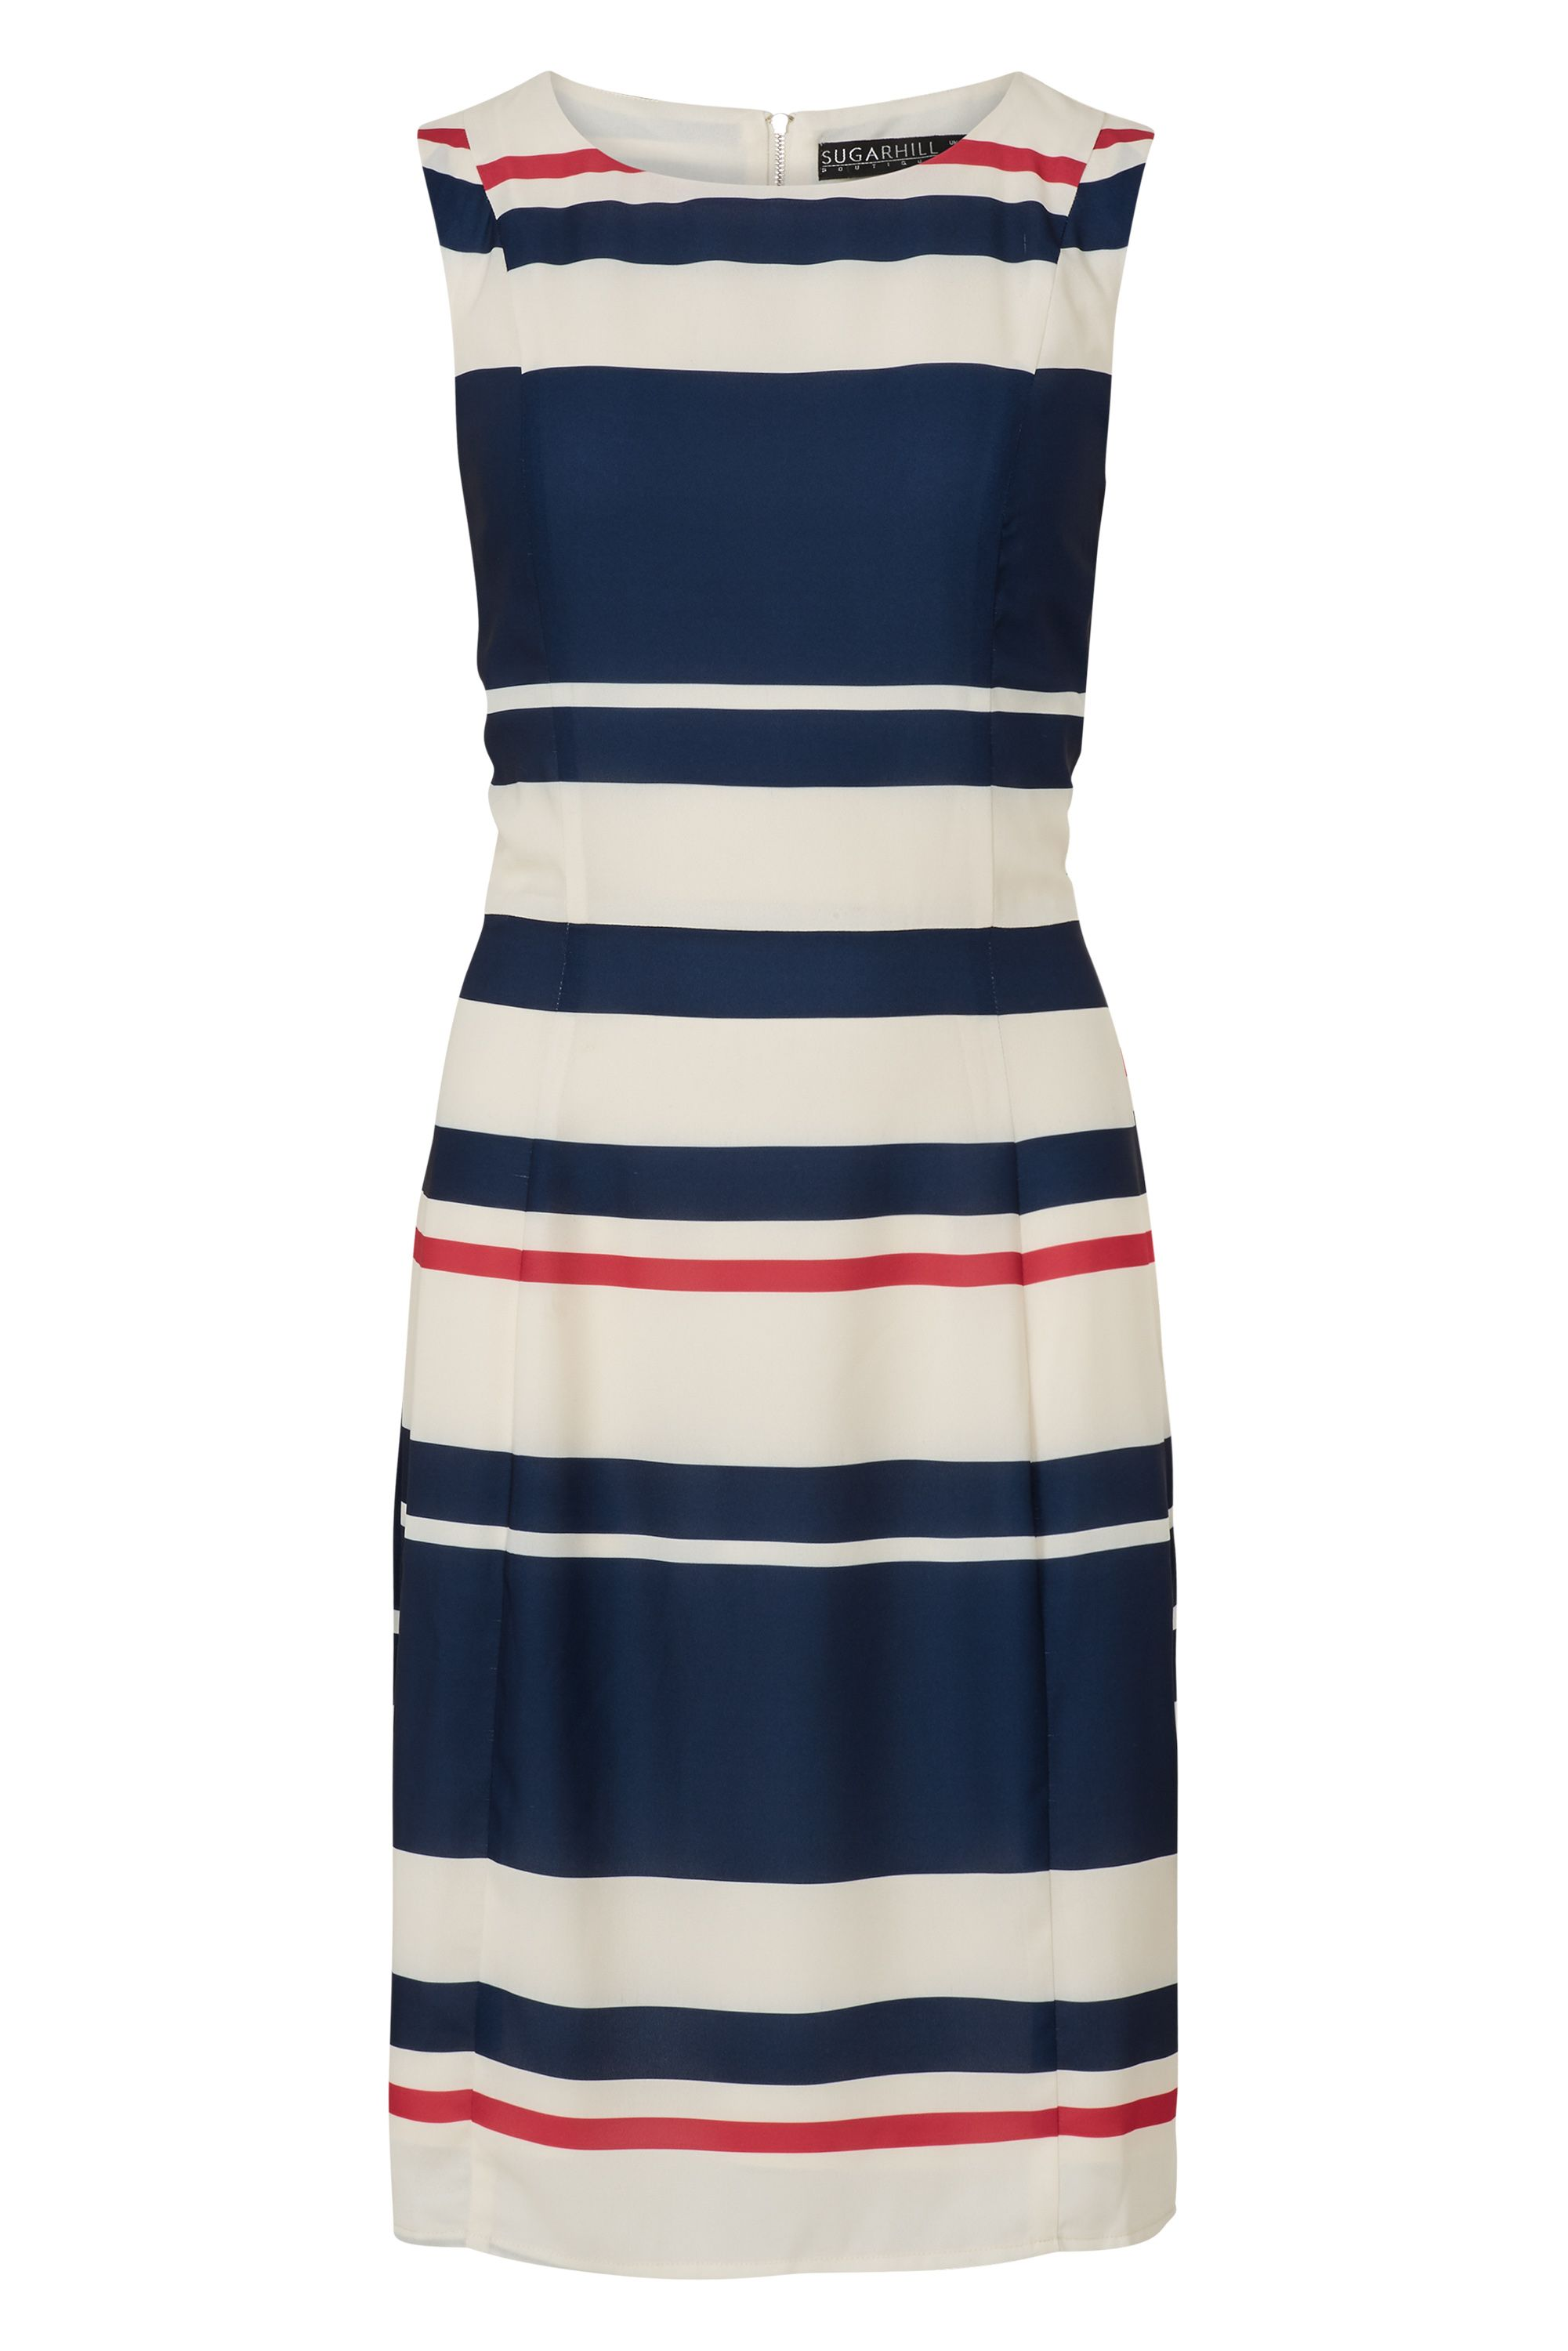 Sugarhill Boutique Eliza Stripe Shift Dress, Cream